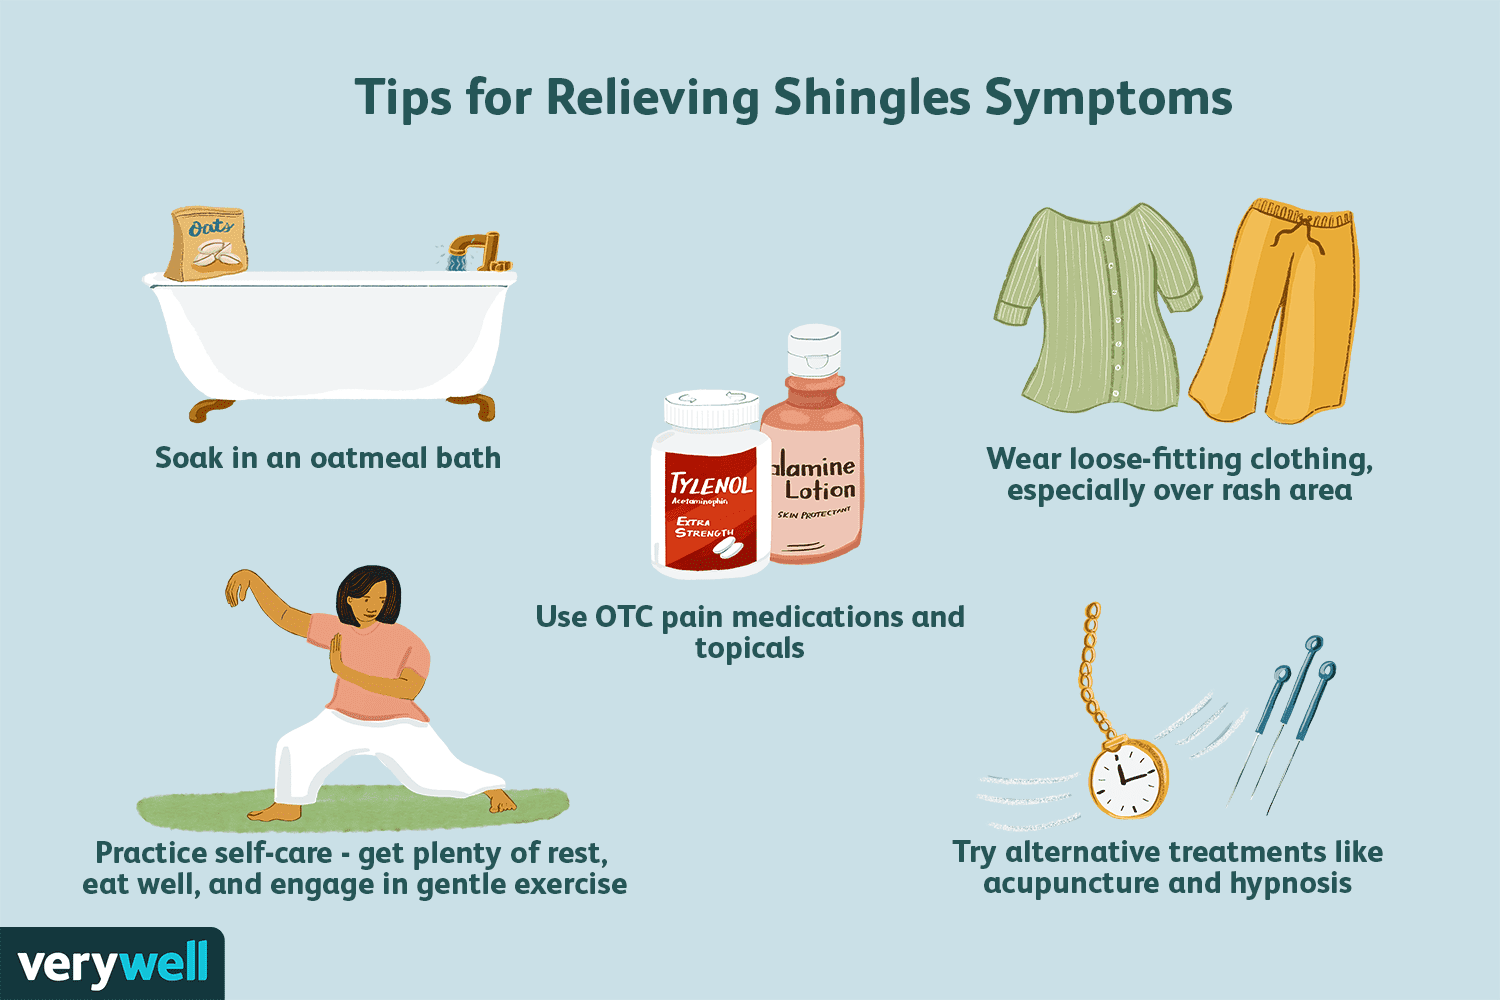 Tips for relieving shingles symptoms